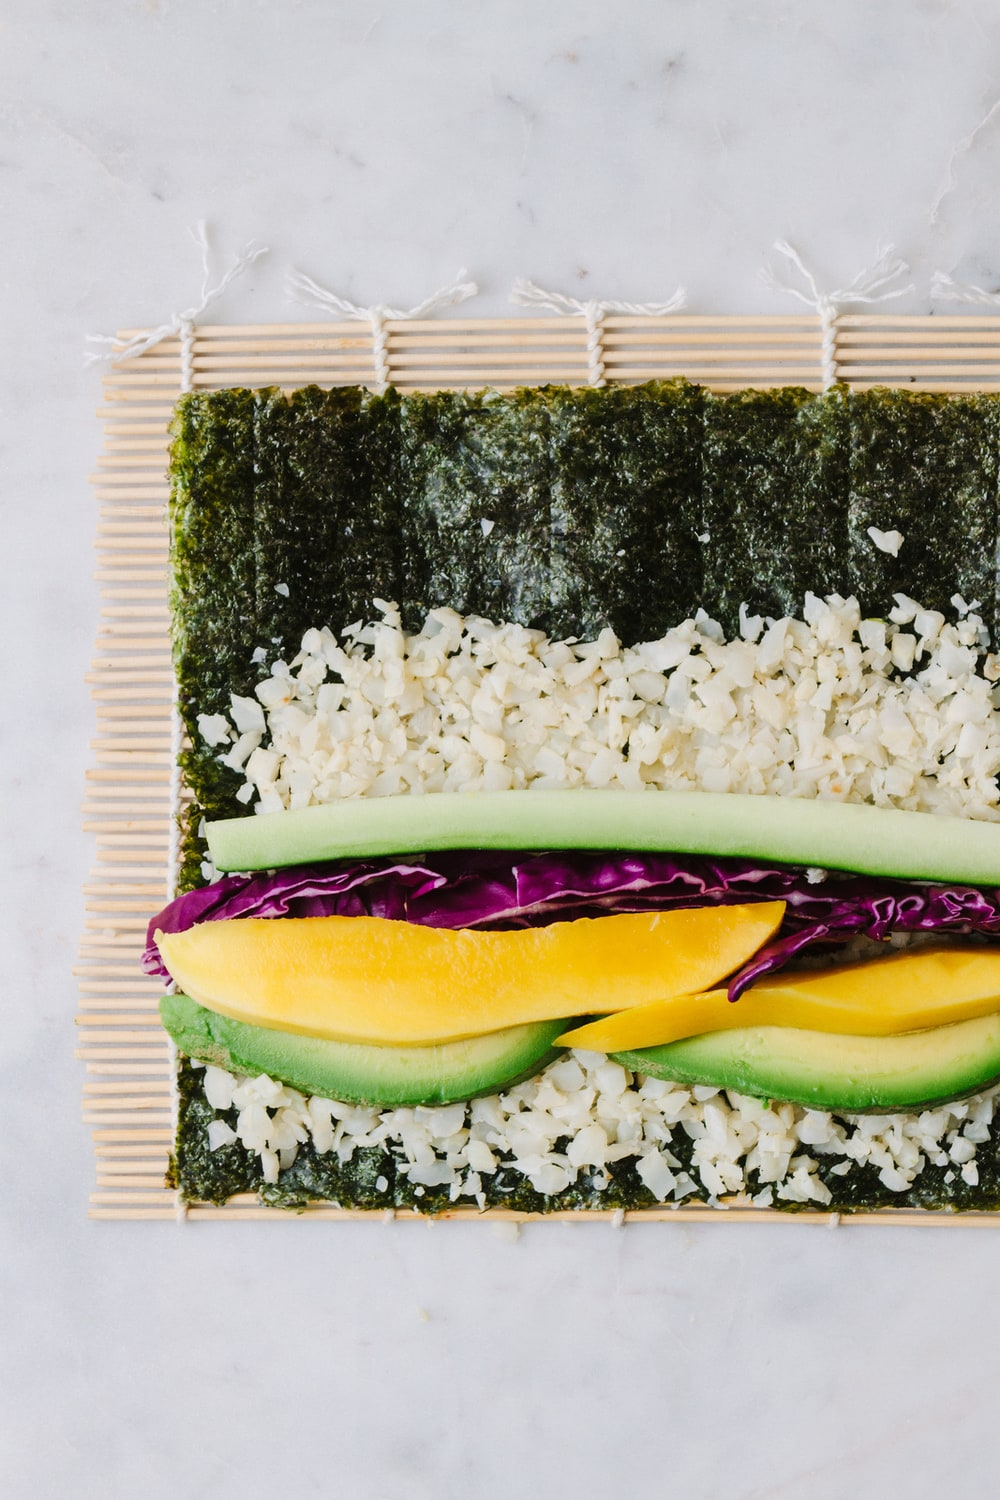 MANGO + AVOCADO CAULIFLOWER RICE SUSHI RECIPE